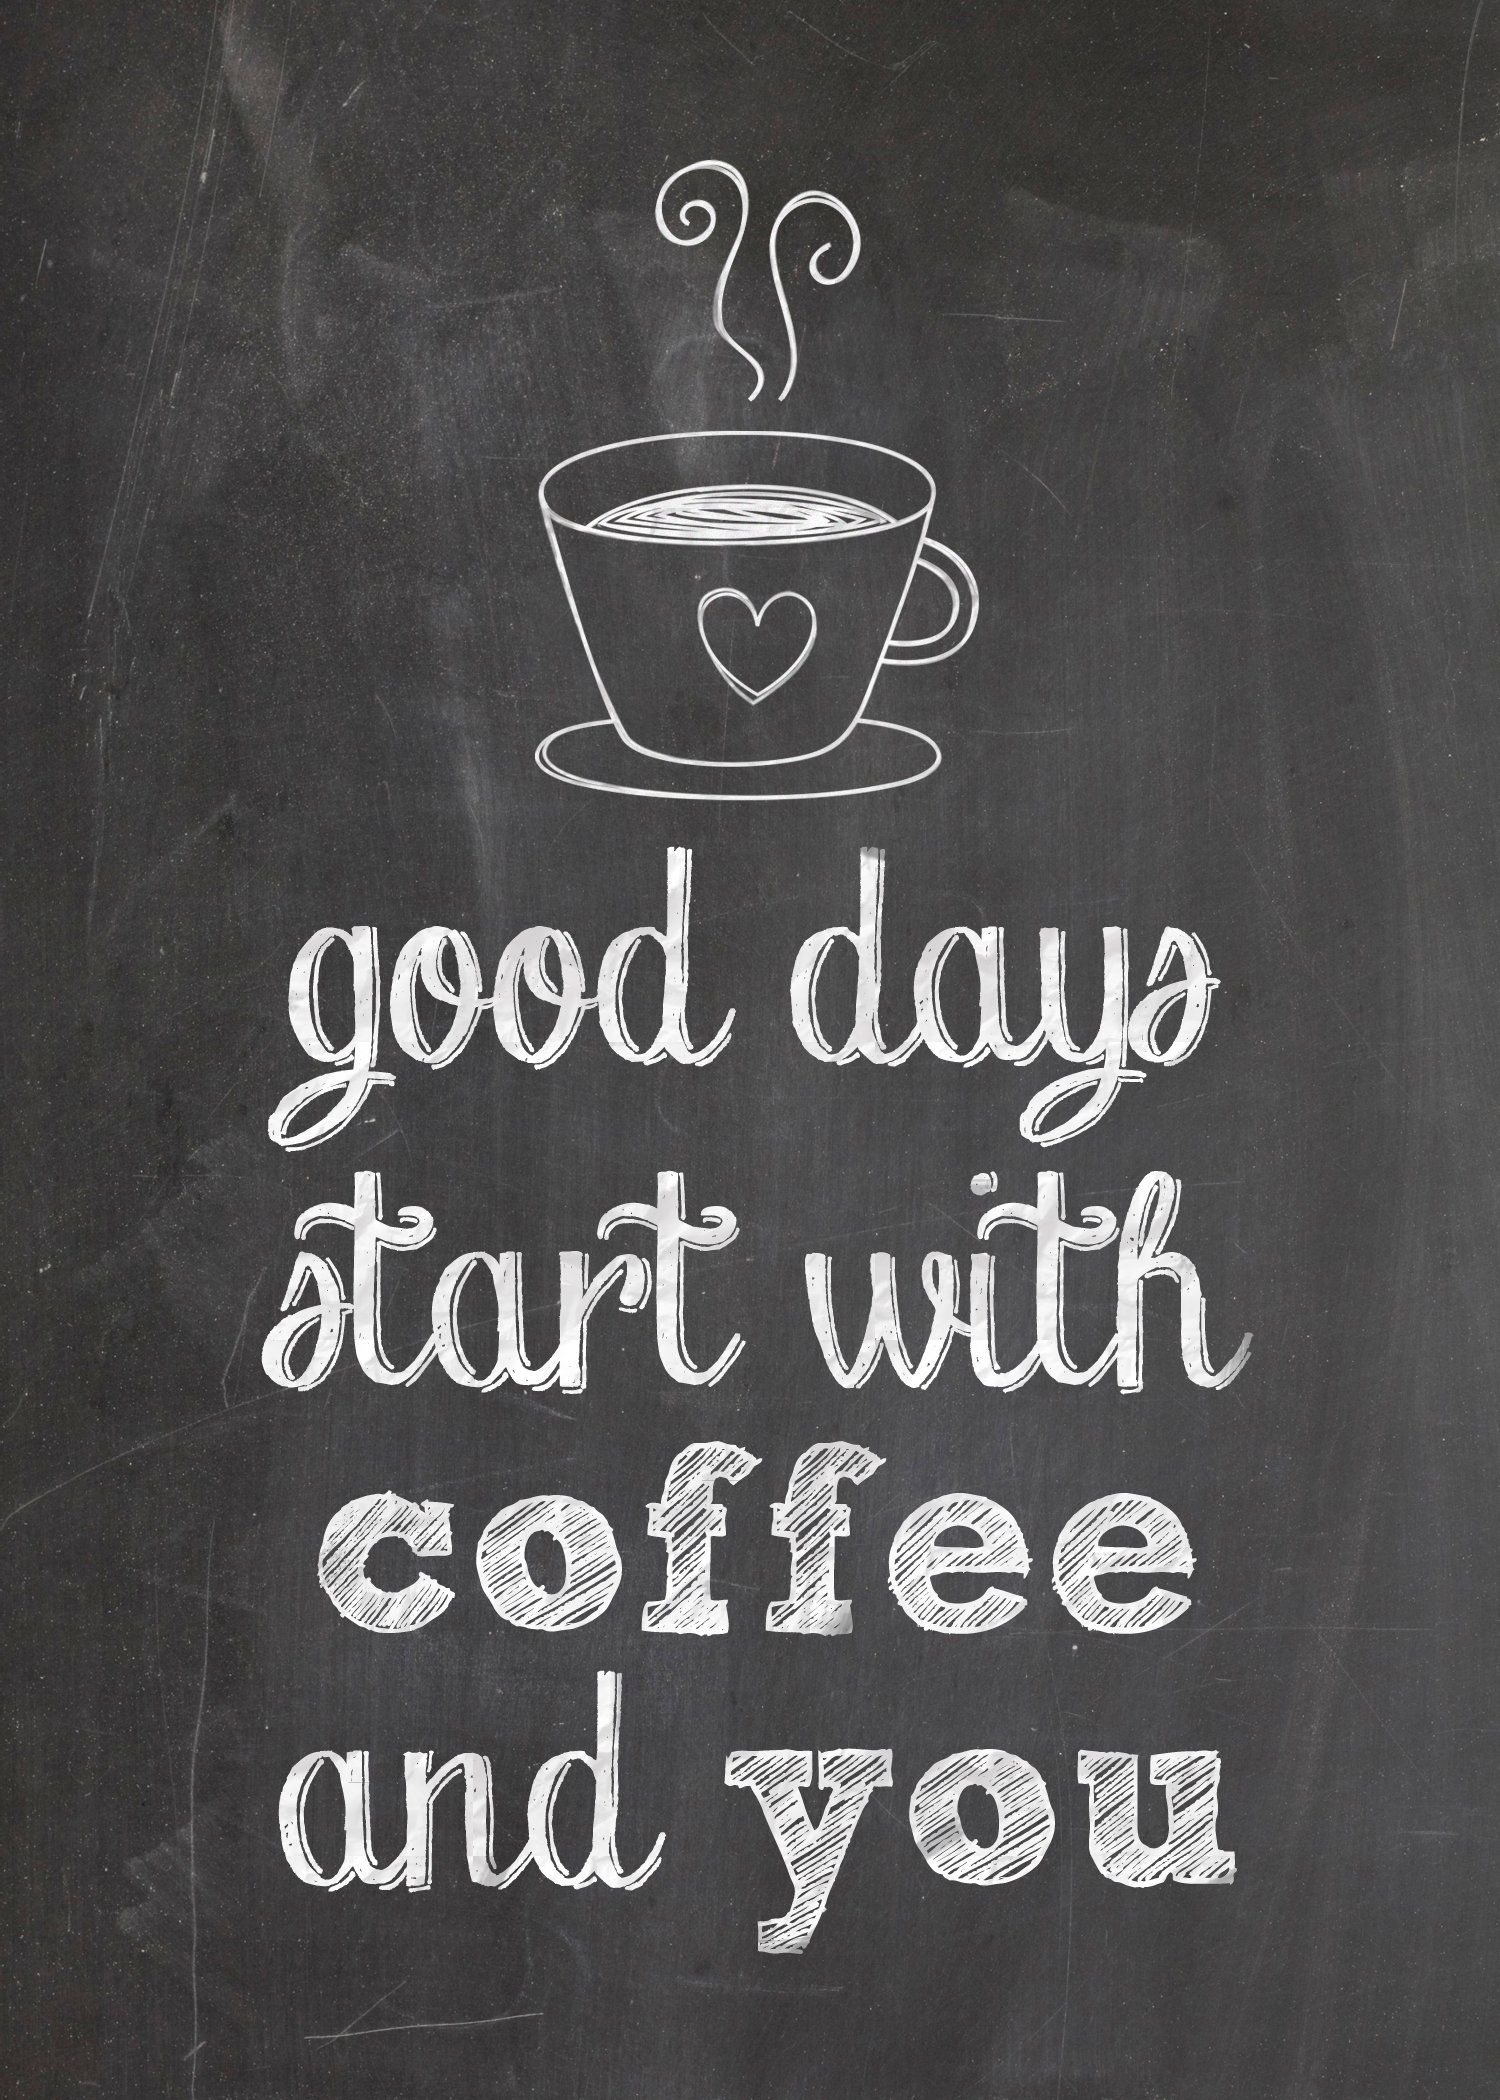 Marvelous Coffee Quotes Tumblr 1 Good Days Start With Coffee And You Coffee Good Morning Graphic Good Morni Coffee Quotes Coffee Printables Funny Coffee Quotes